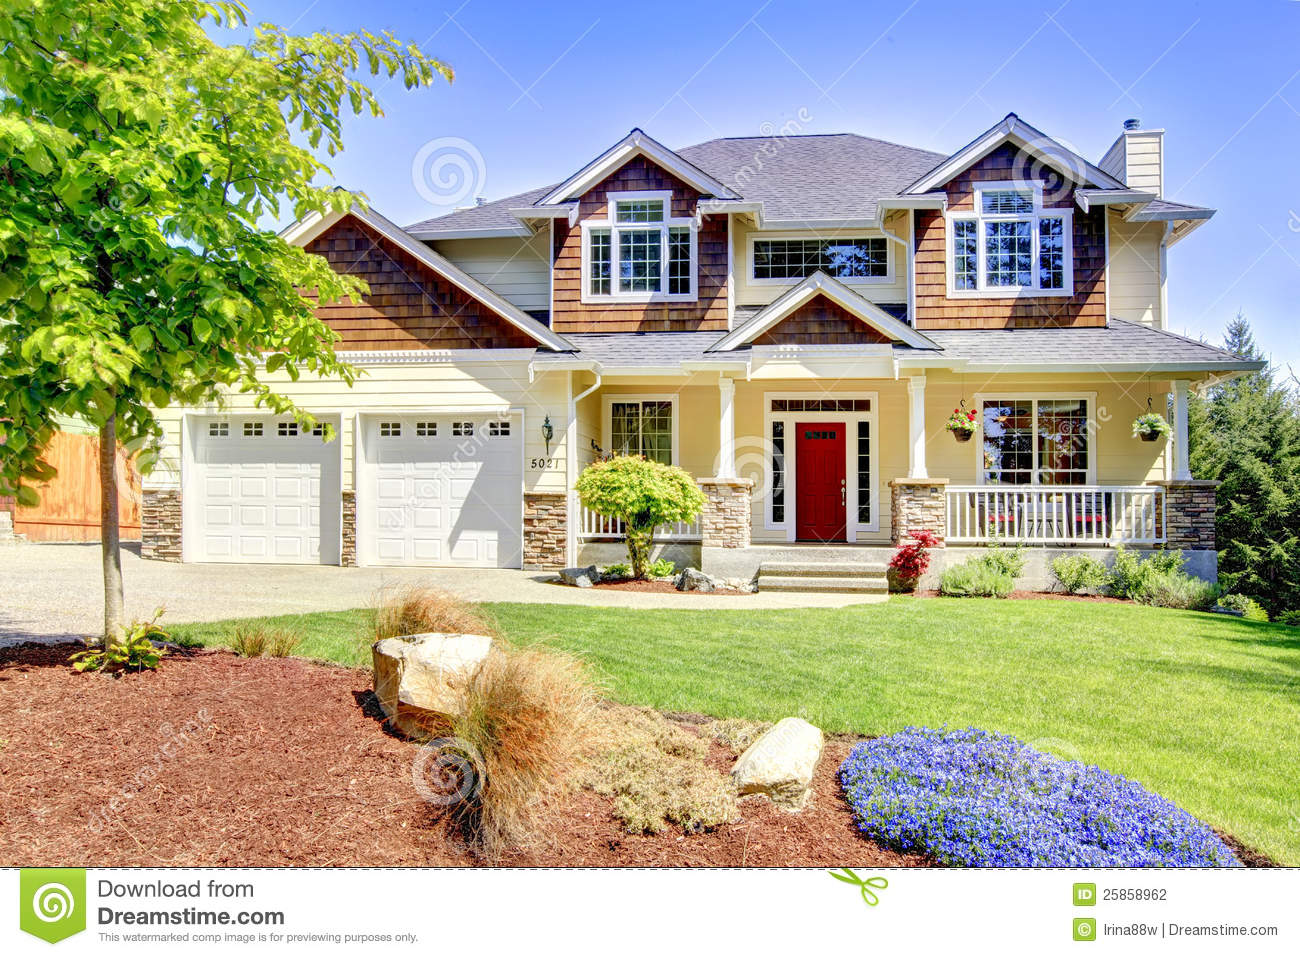 Large american beautiful house with red door stock photo for A beautiful house image